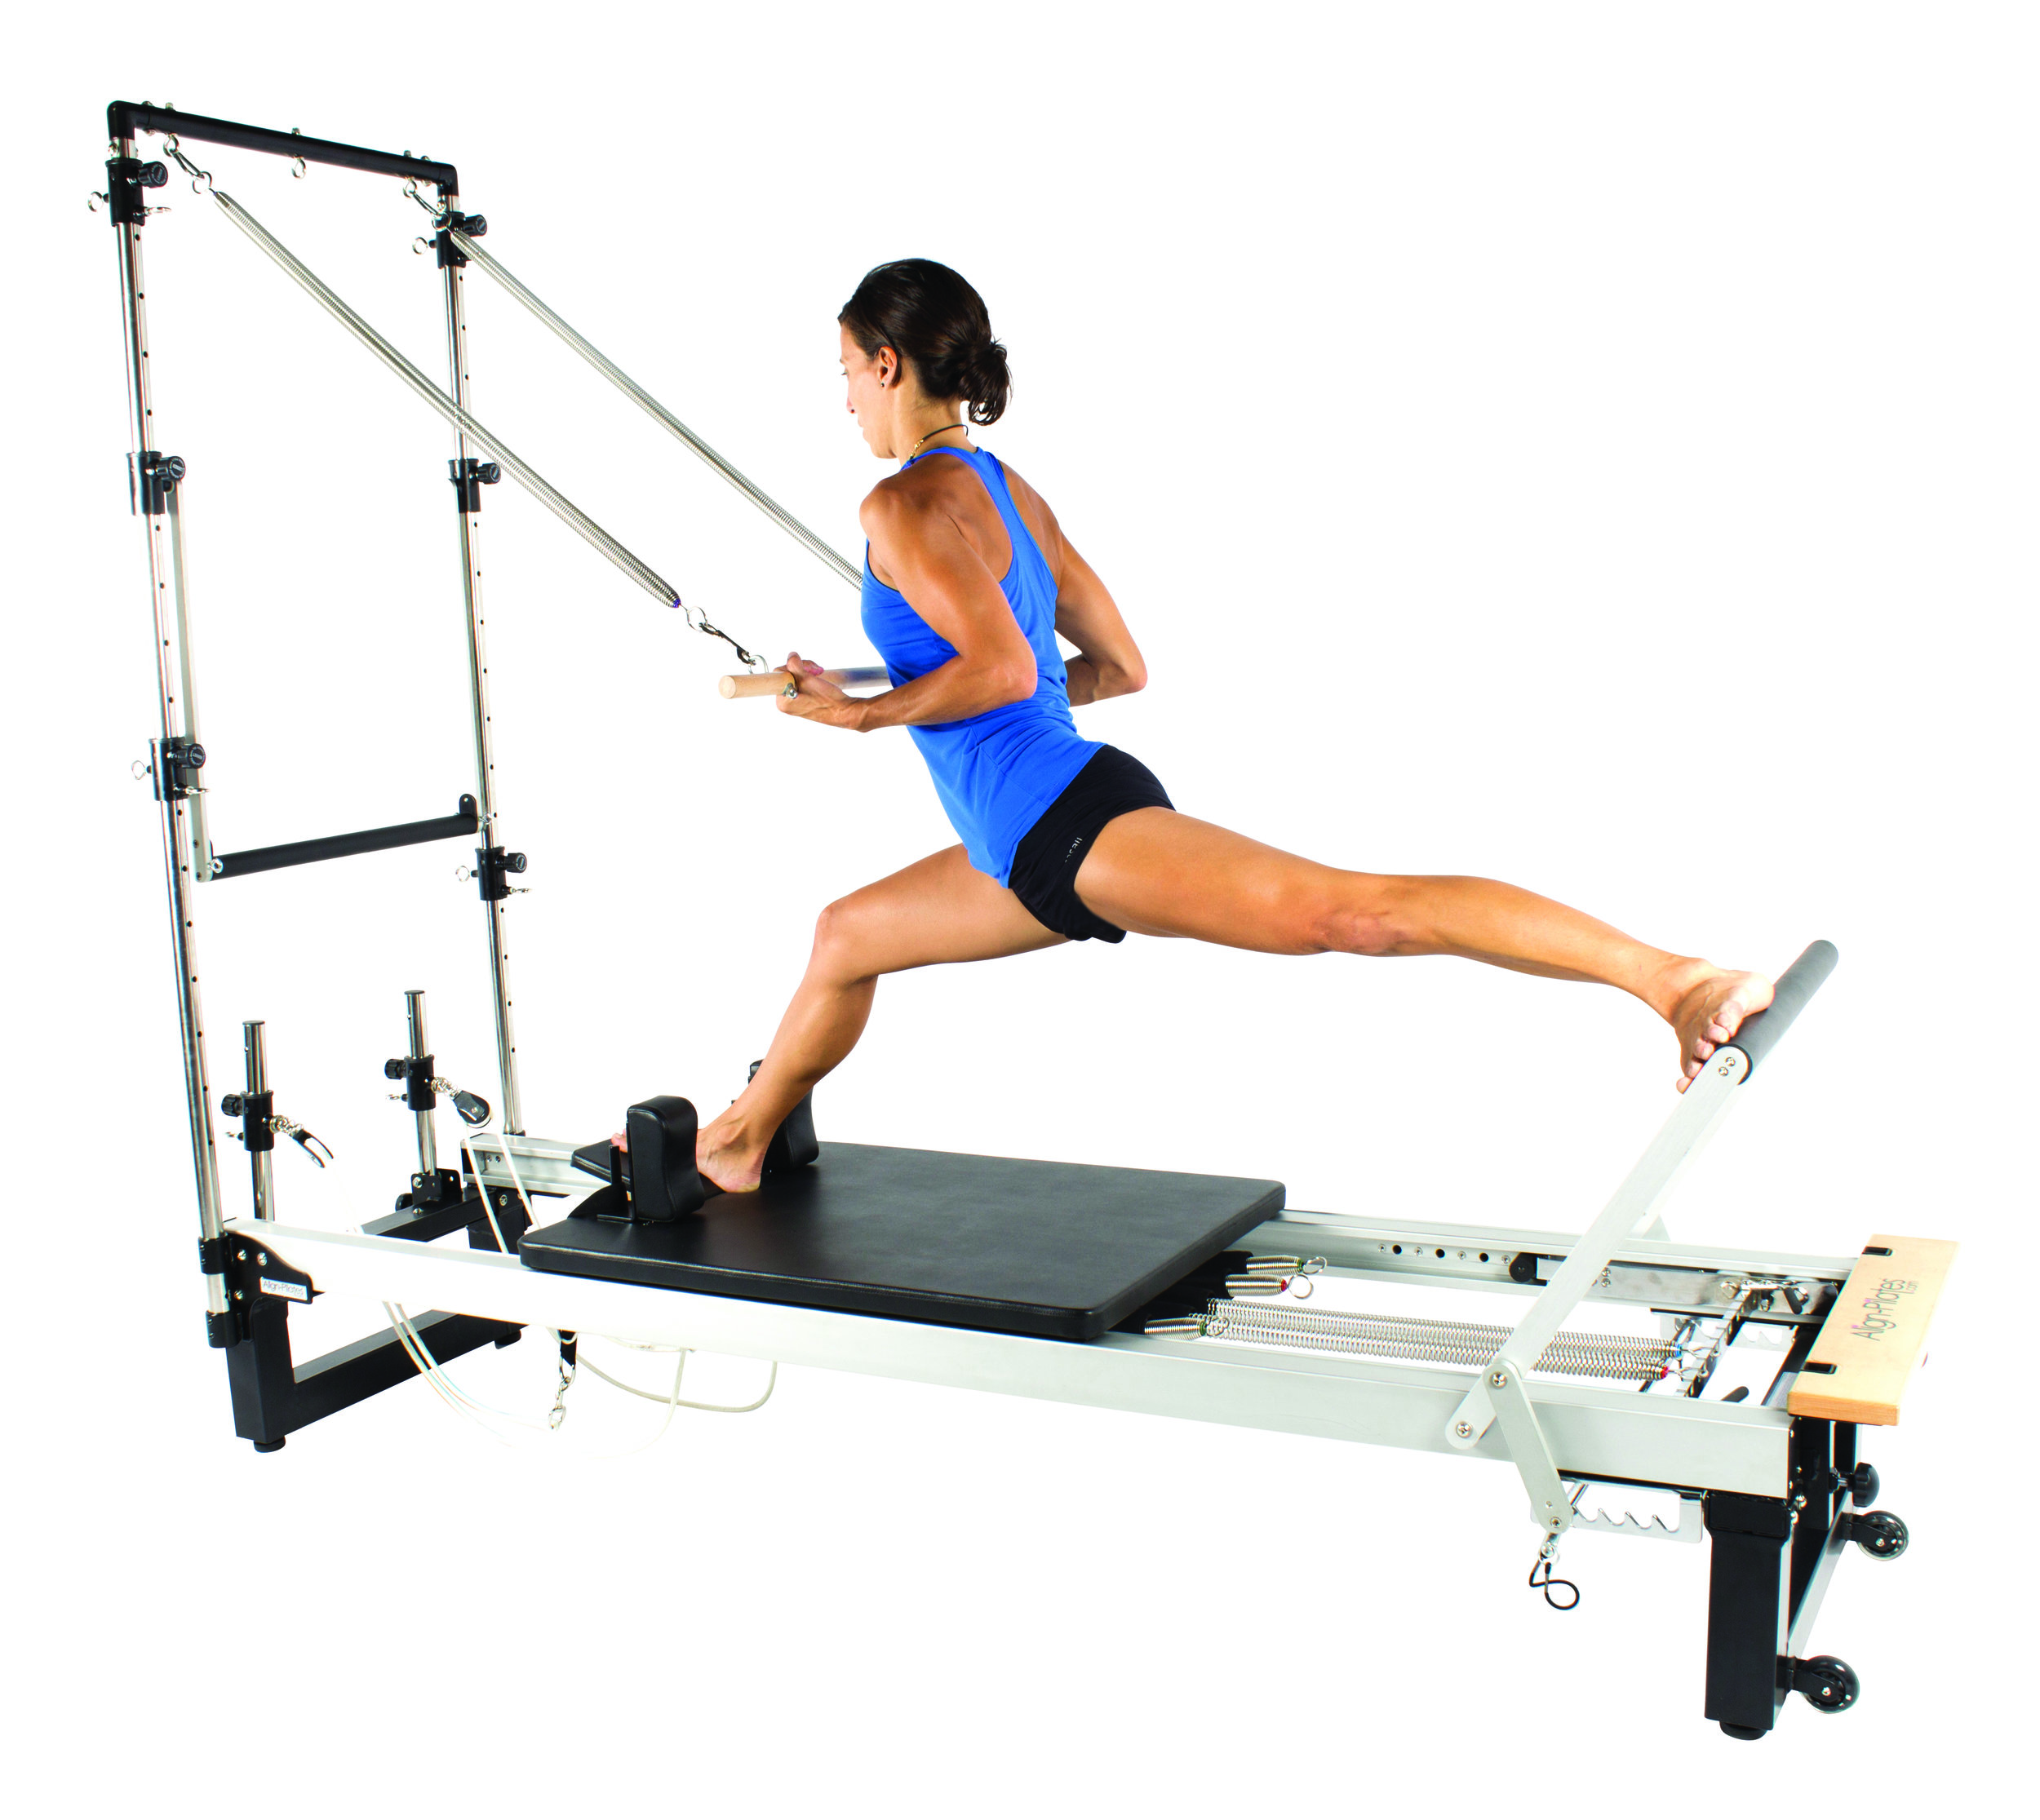 Align A2R2 studio pilates reformer with half trap